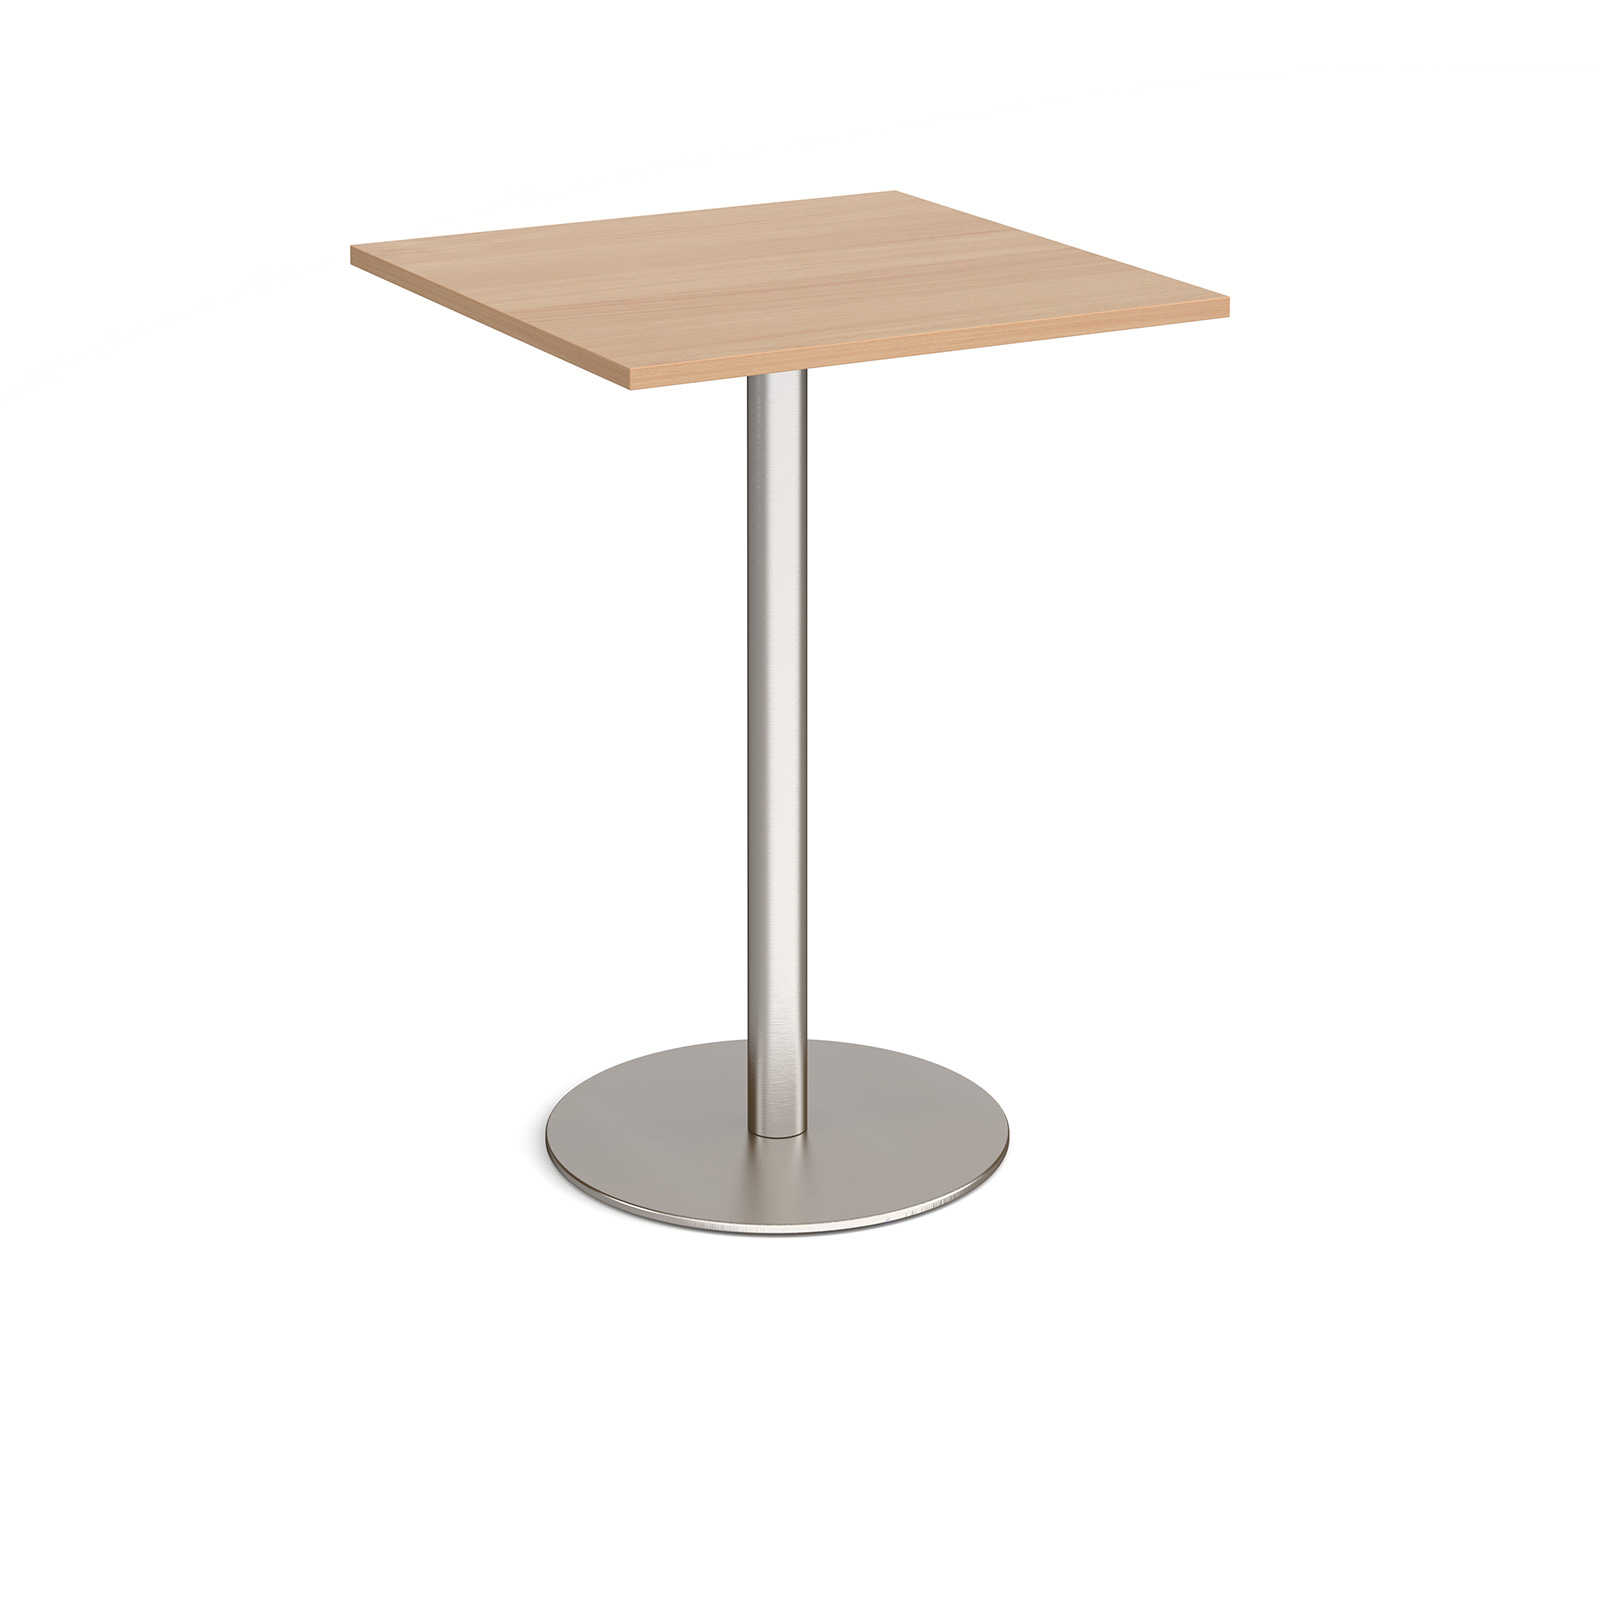 Canteen / Dining Monza square poseur table with flat round base